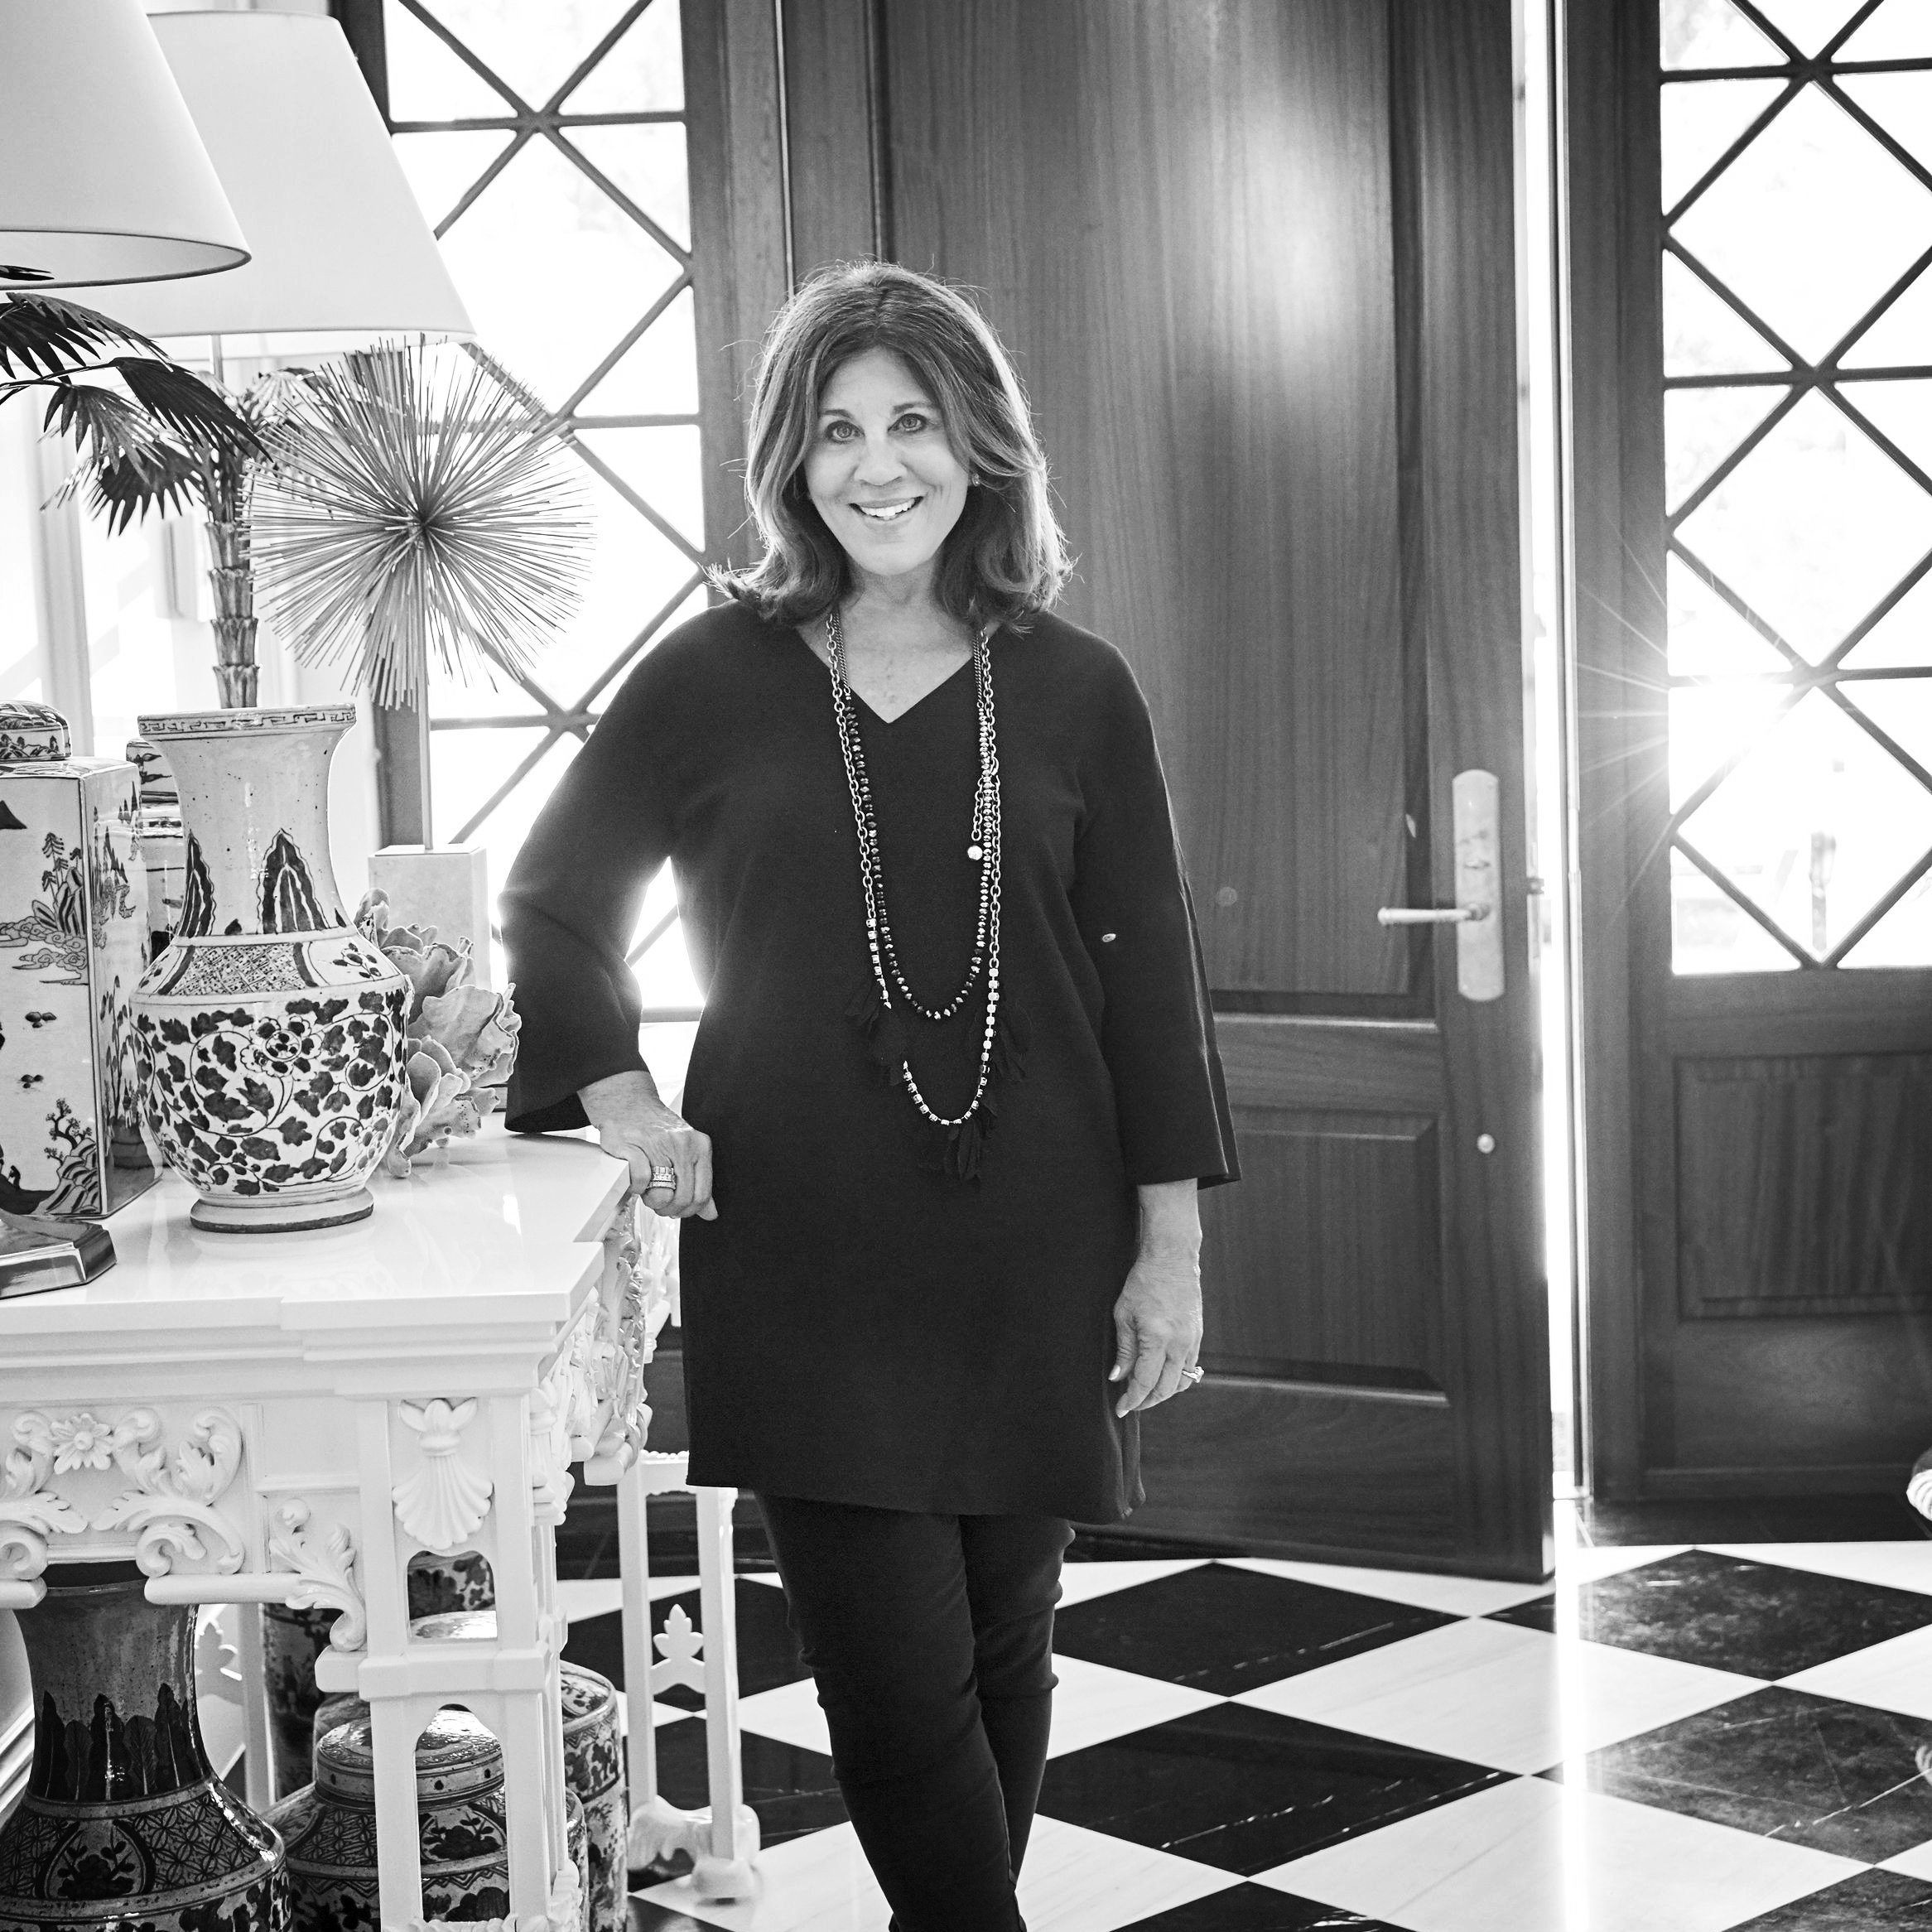 """Suzanne Kasler   Suzanne often asserts that """"a room should be collected, not decorated"""". Incorporating the personal collections of her clients with fine art and antiques, contemporary pieces and custom-designed furniture, Suzanne's meaningful interiors straddle that rare middle ground between sophisticate and ingénue."""